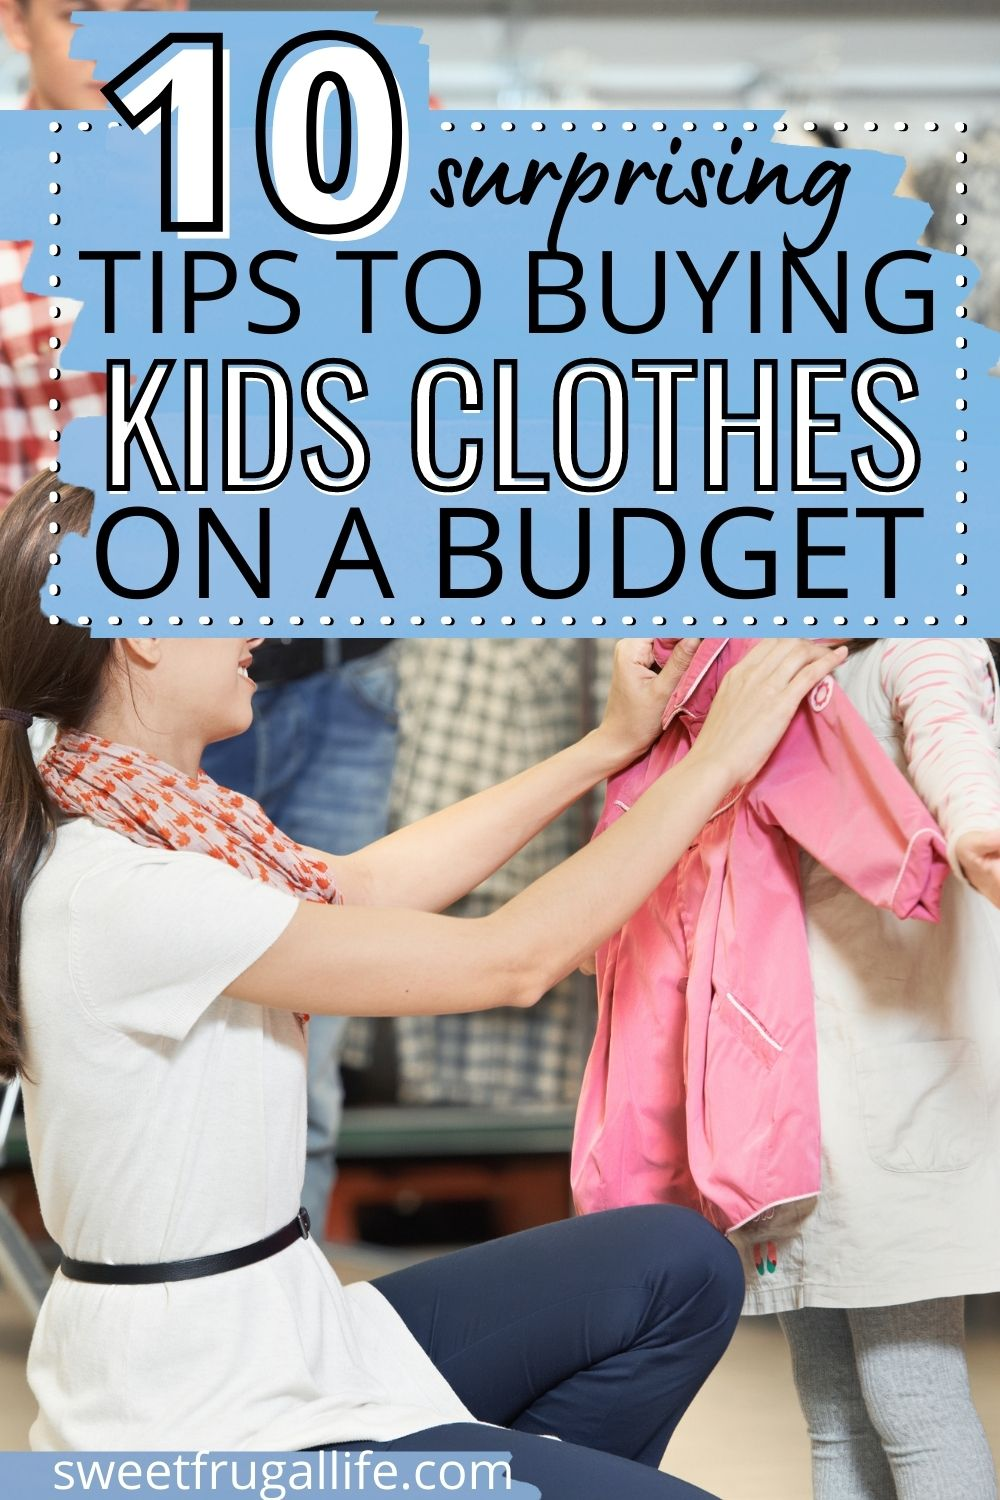 kids clothes on a budget - budget friendly tips for parents (1)